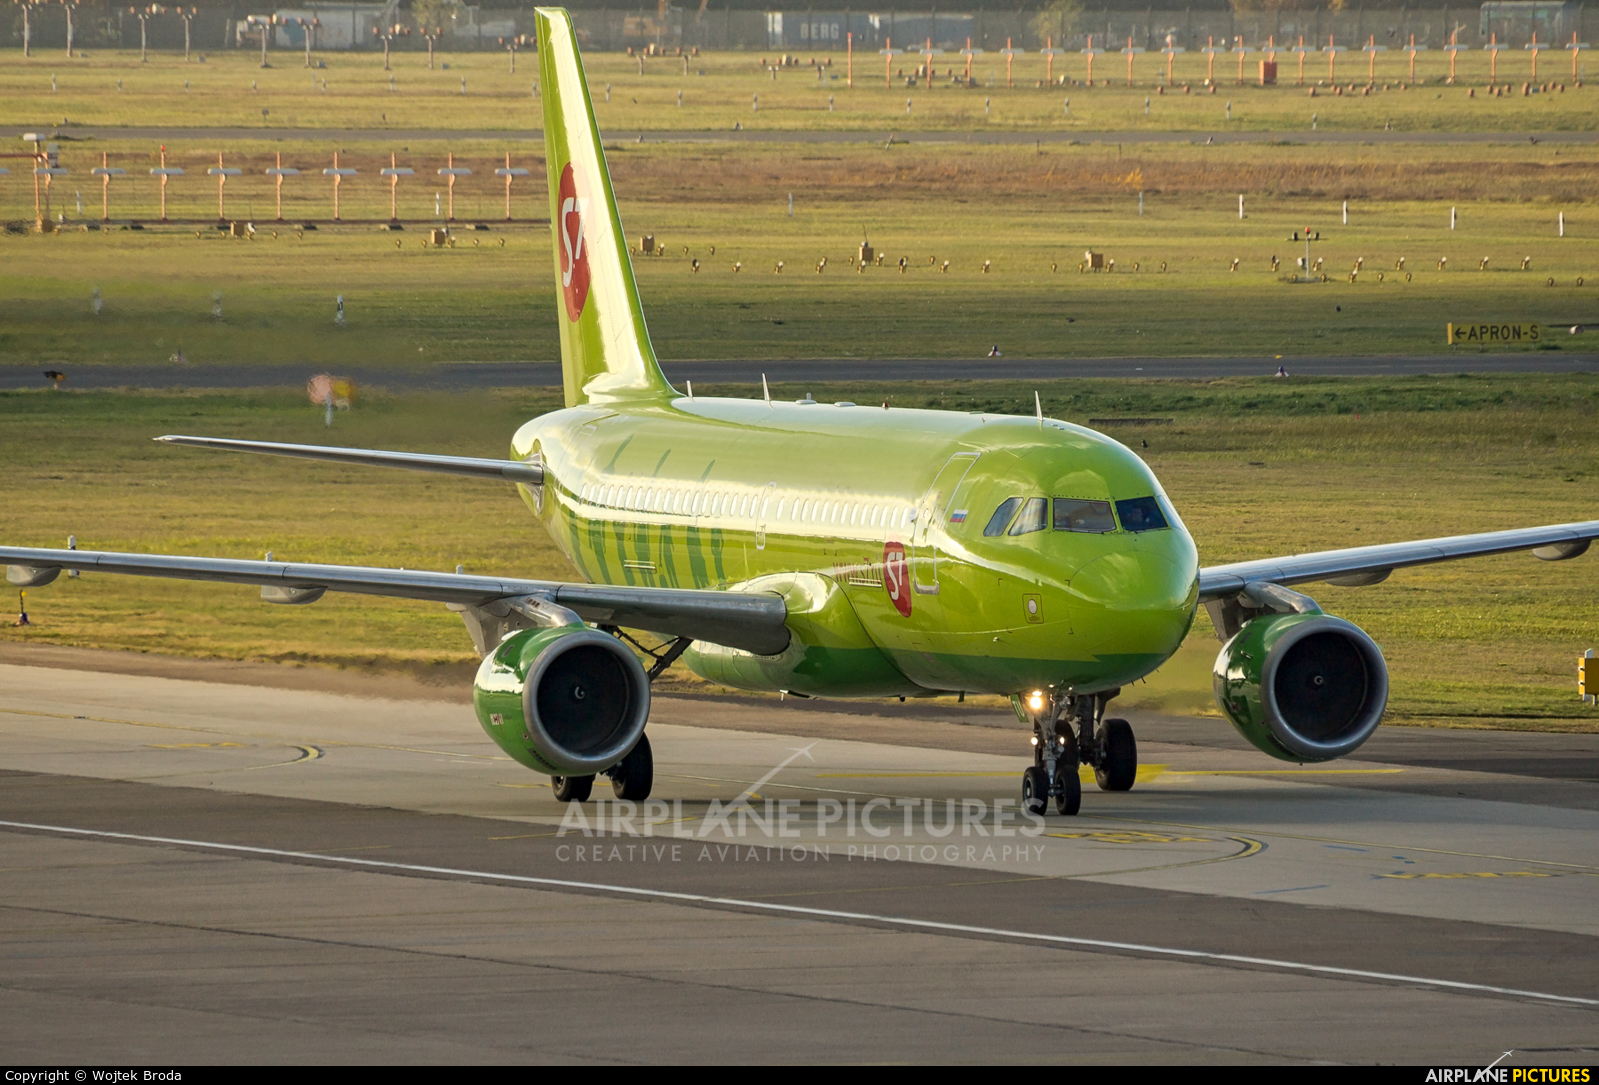 S7 Airlines VP-BTU aircraft at Berlin - Tegel